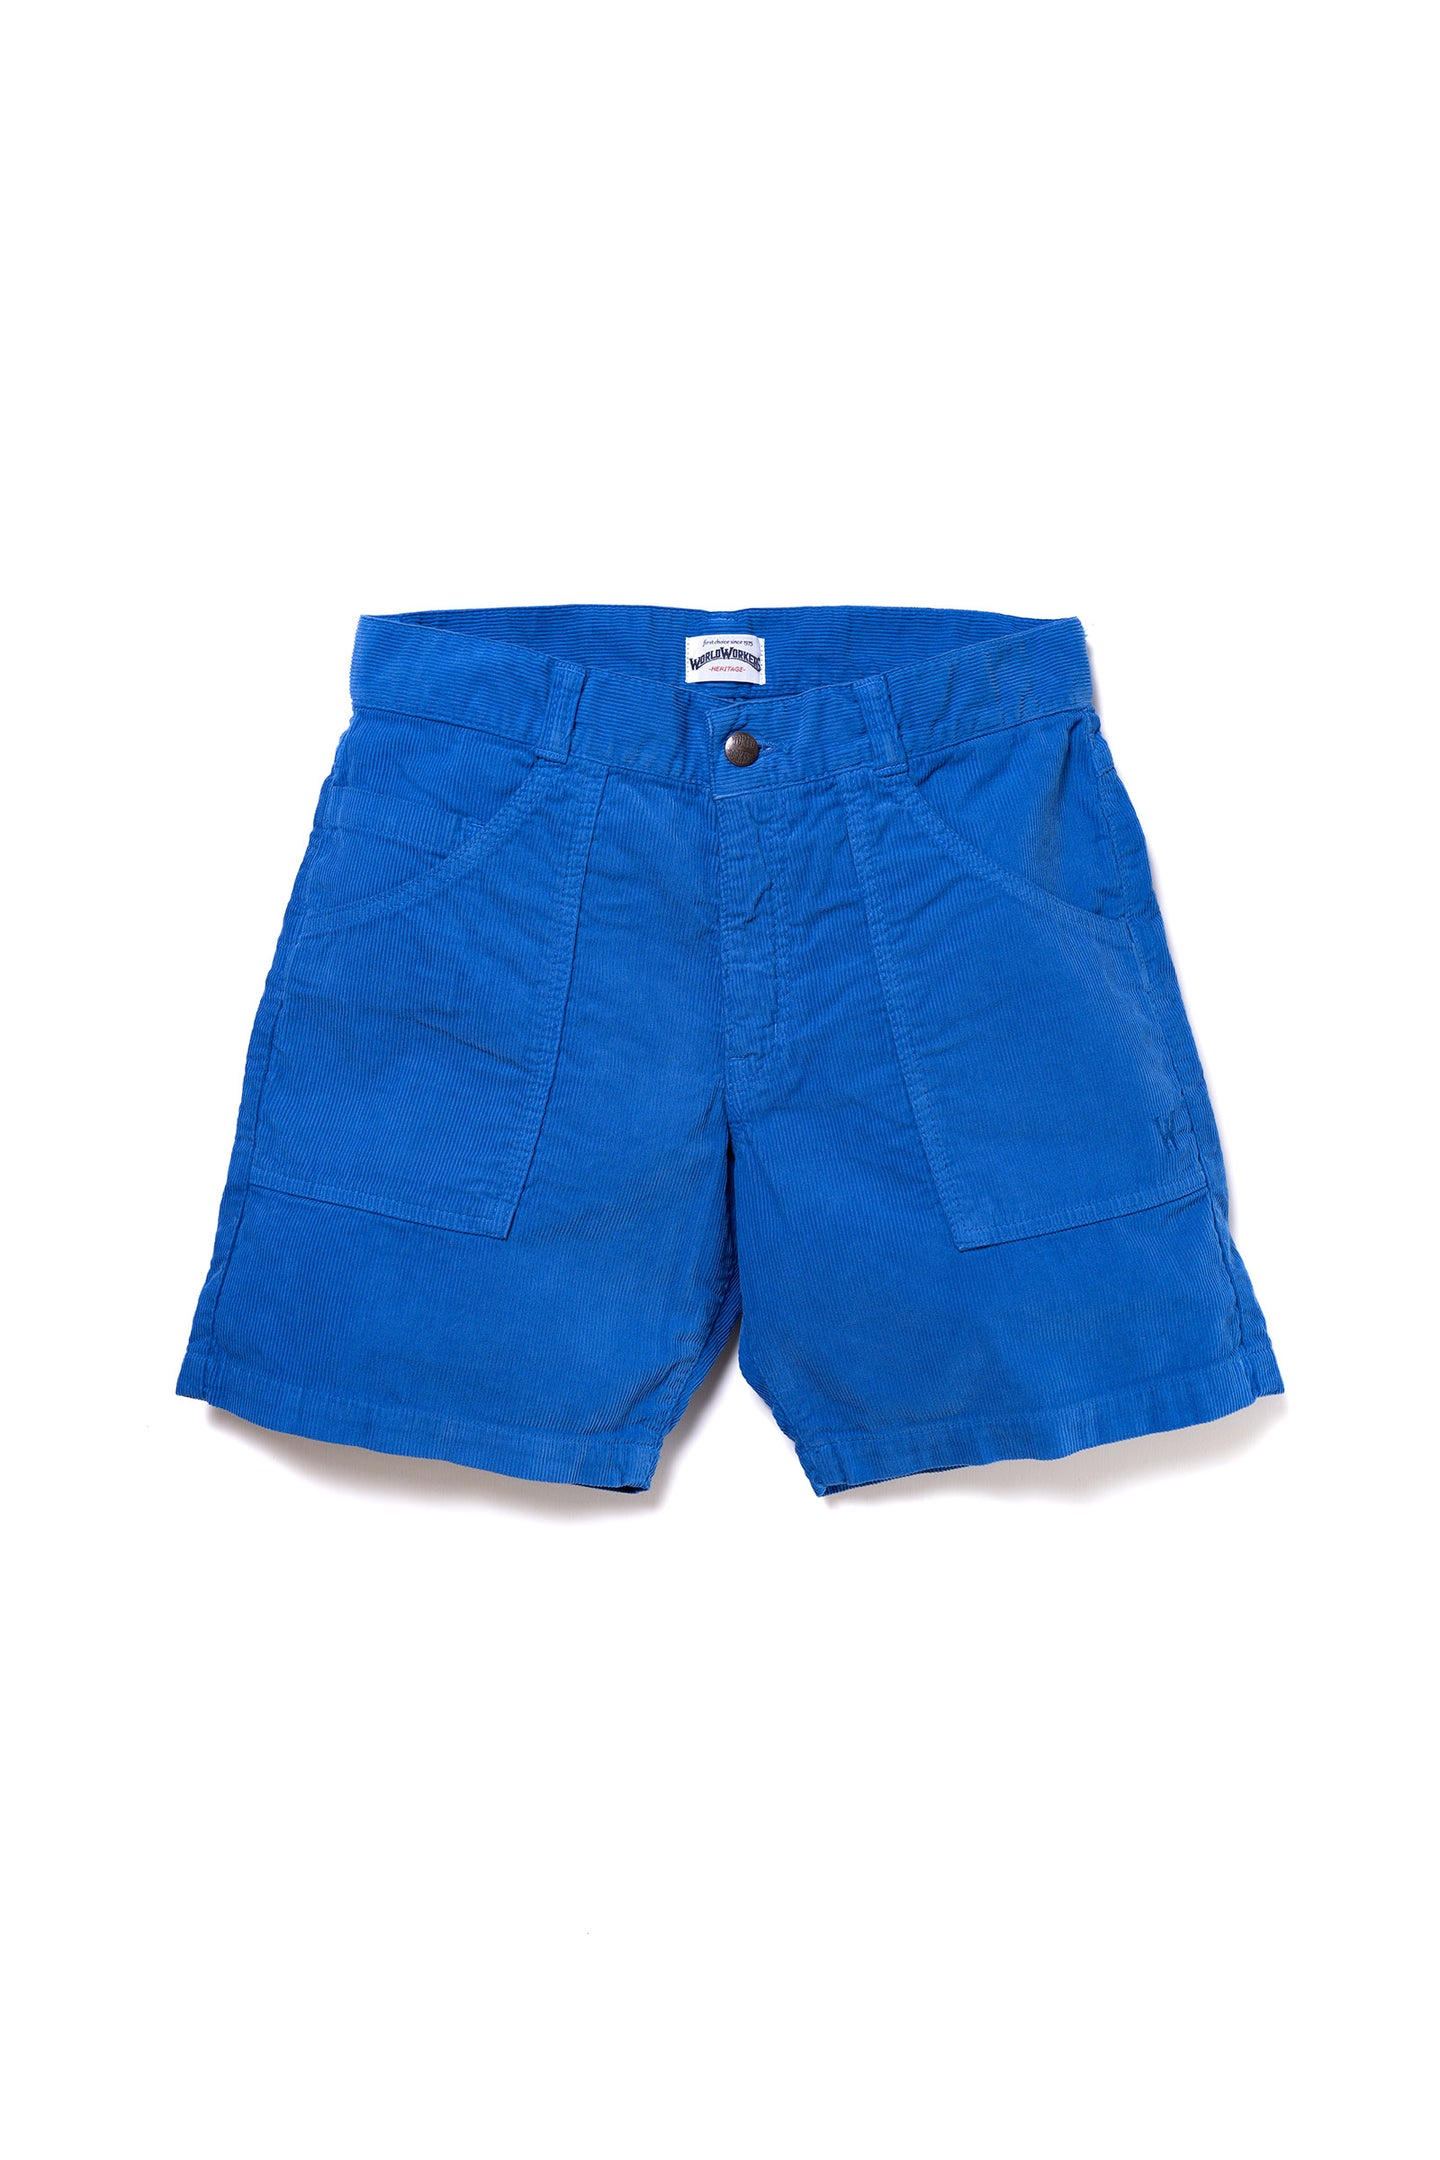 WR777M (08 Royal Blue) World Workers Beach Corduroy Shorts